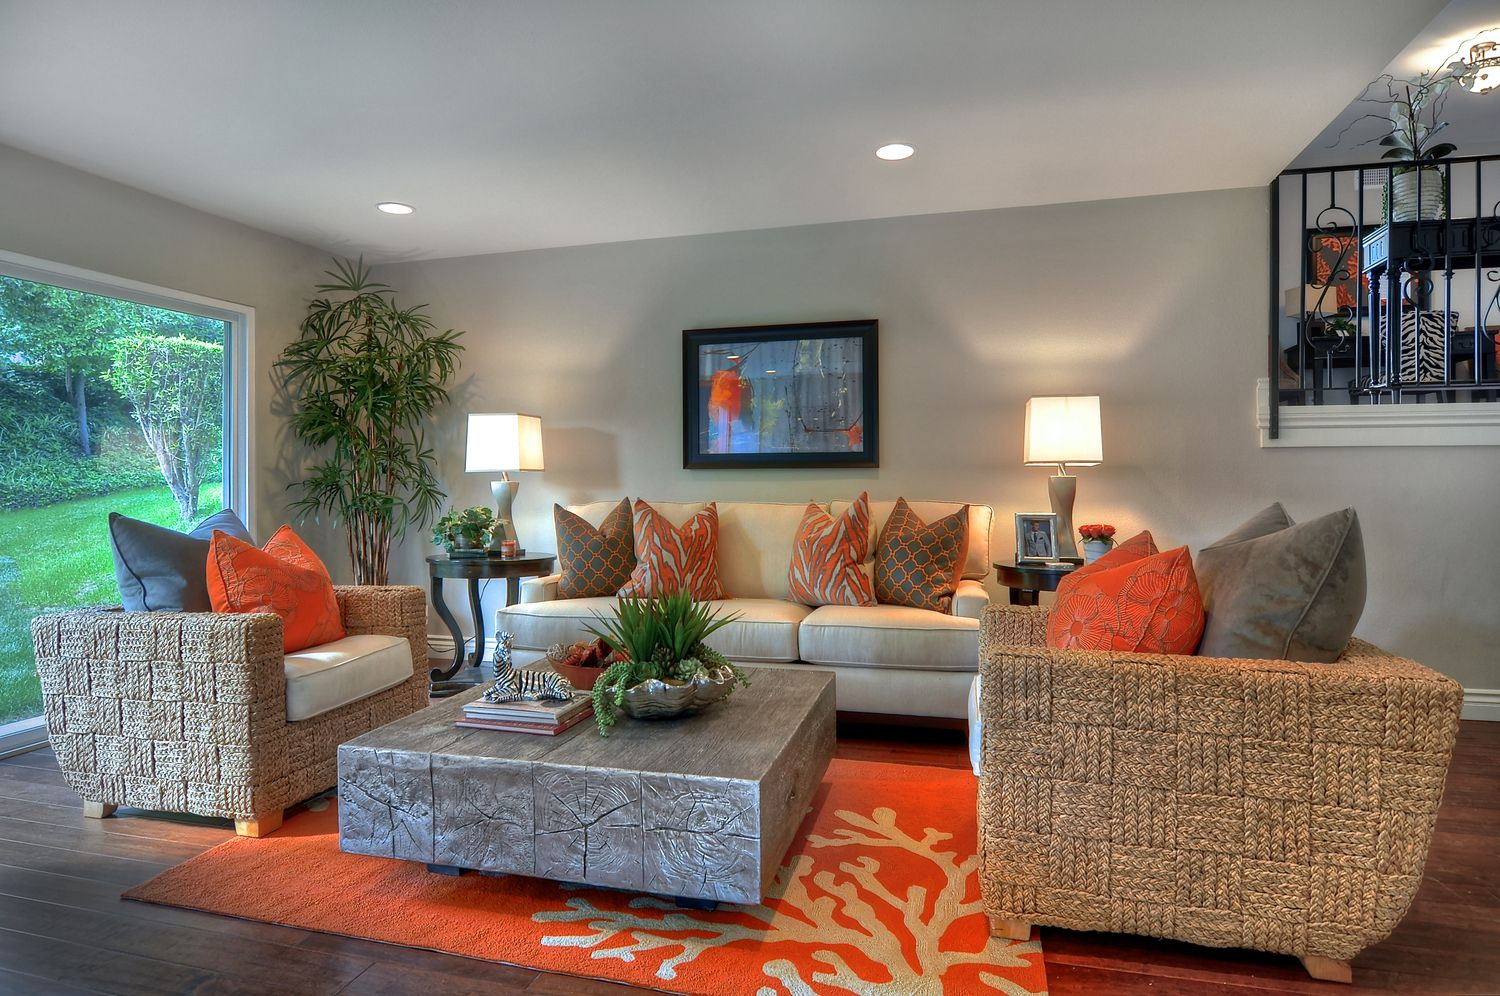 ABOUT — Premier Home Staging, LLC